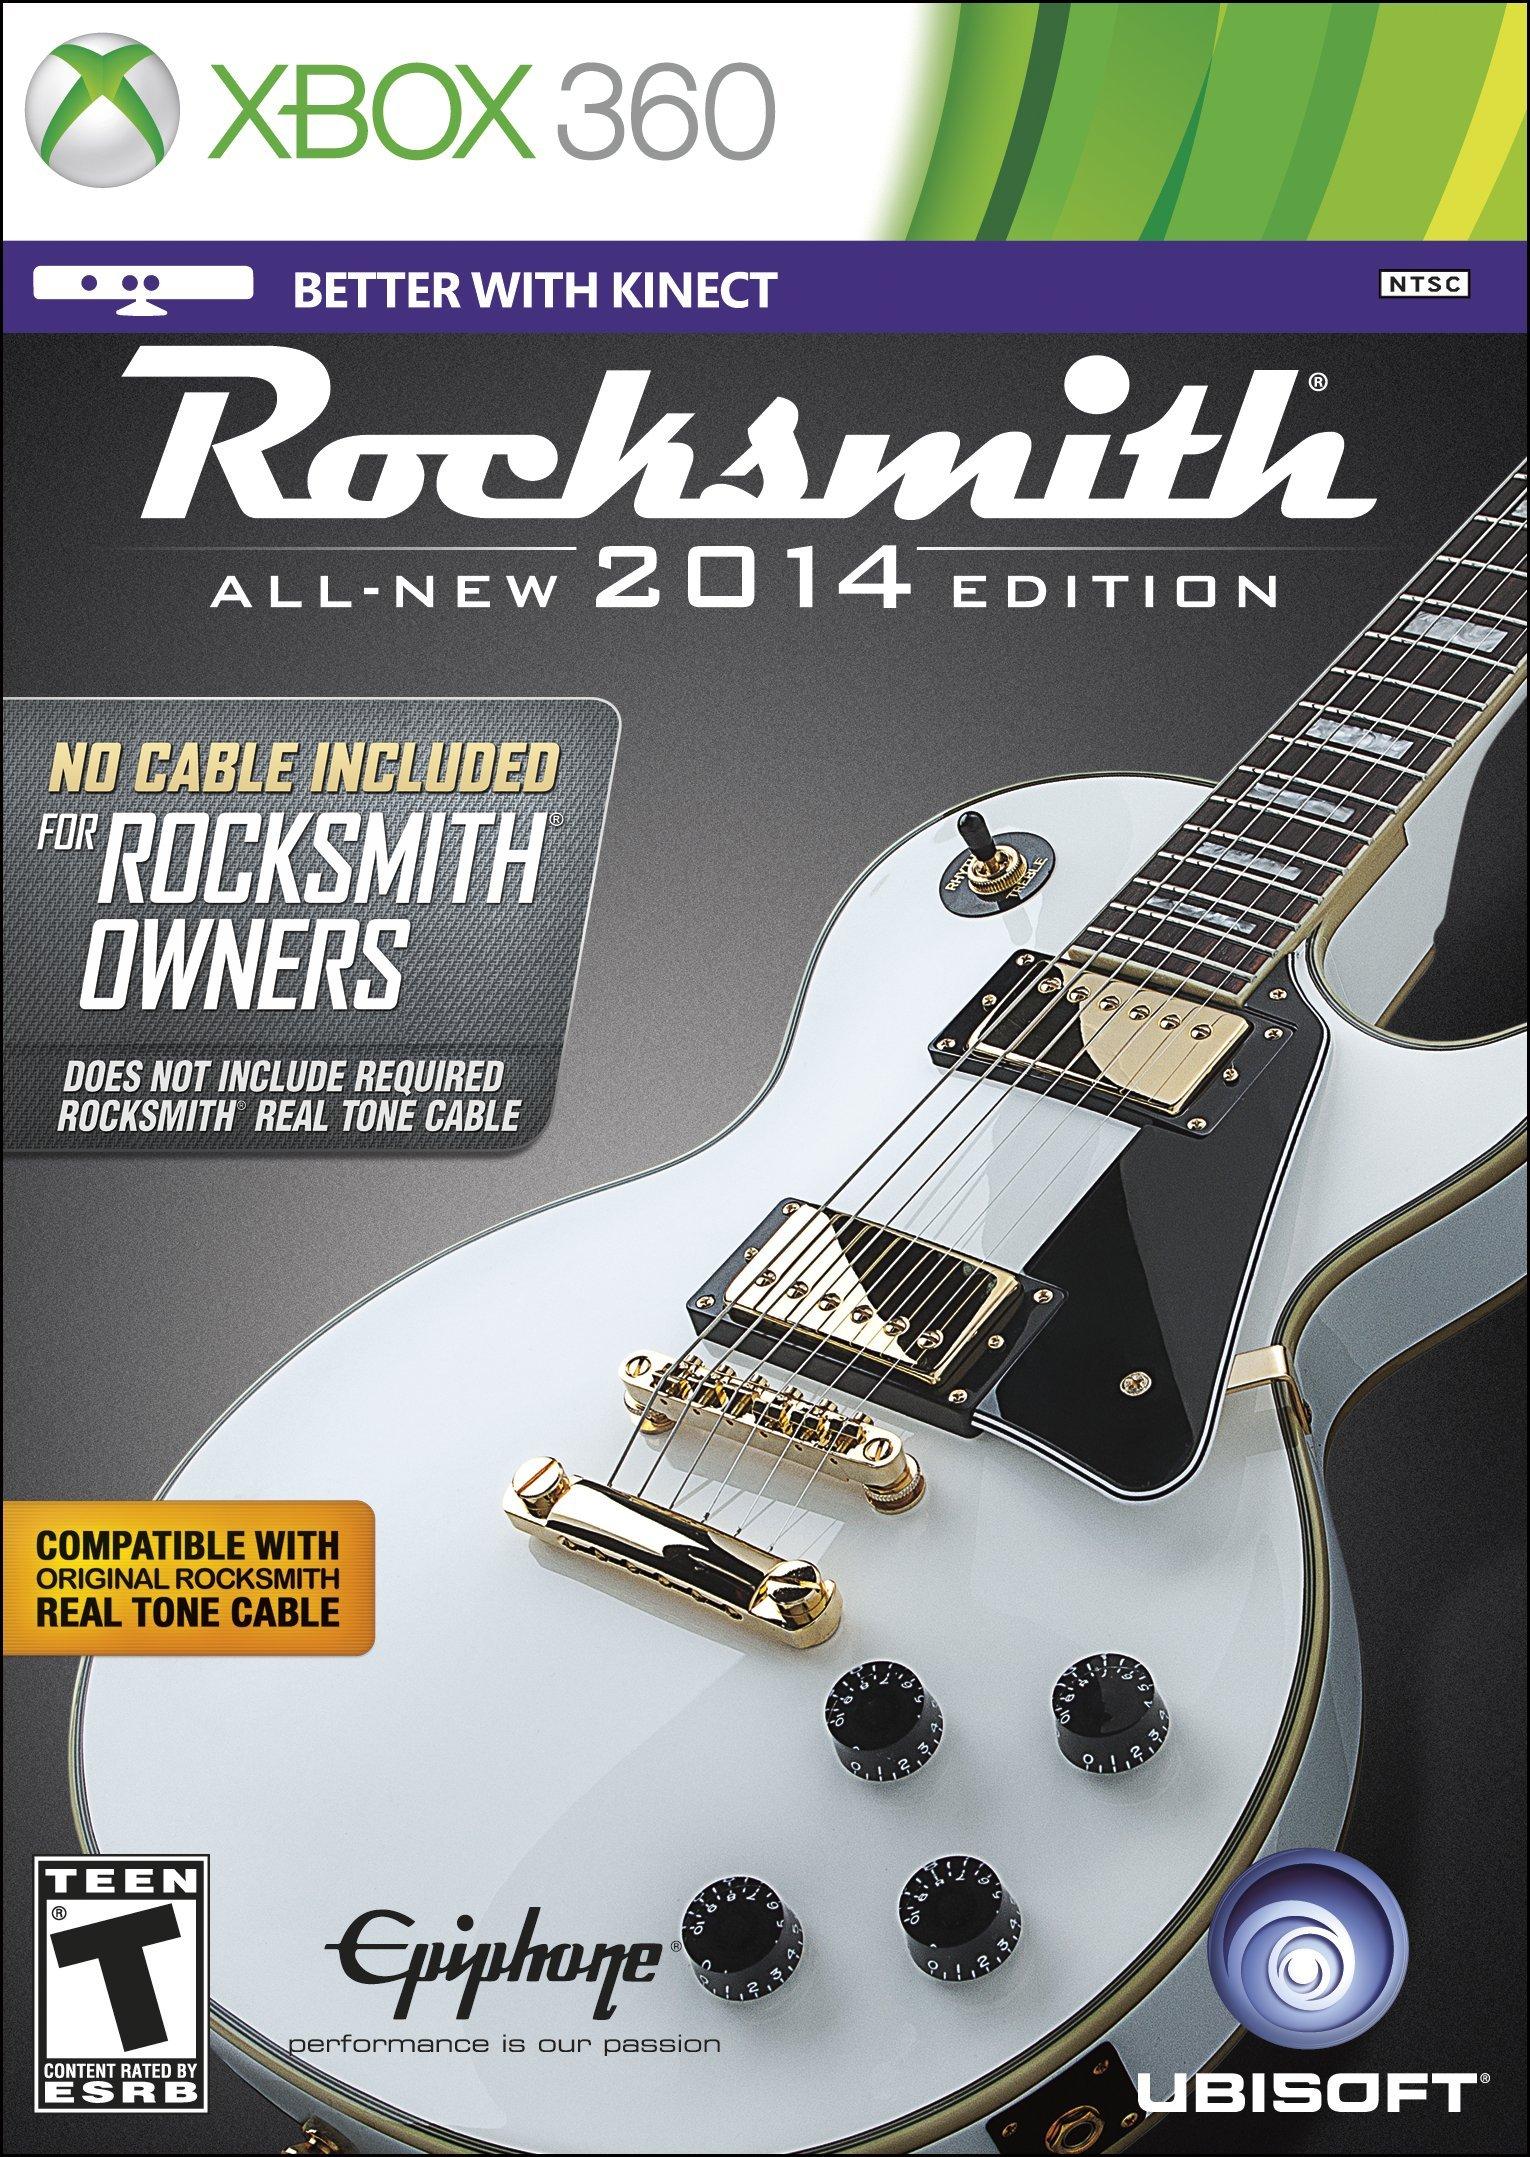 Rocksmith: All-new 2014 Edition - Paramore Song Pack 2018 pc game Img-1